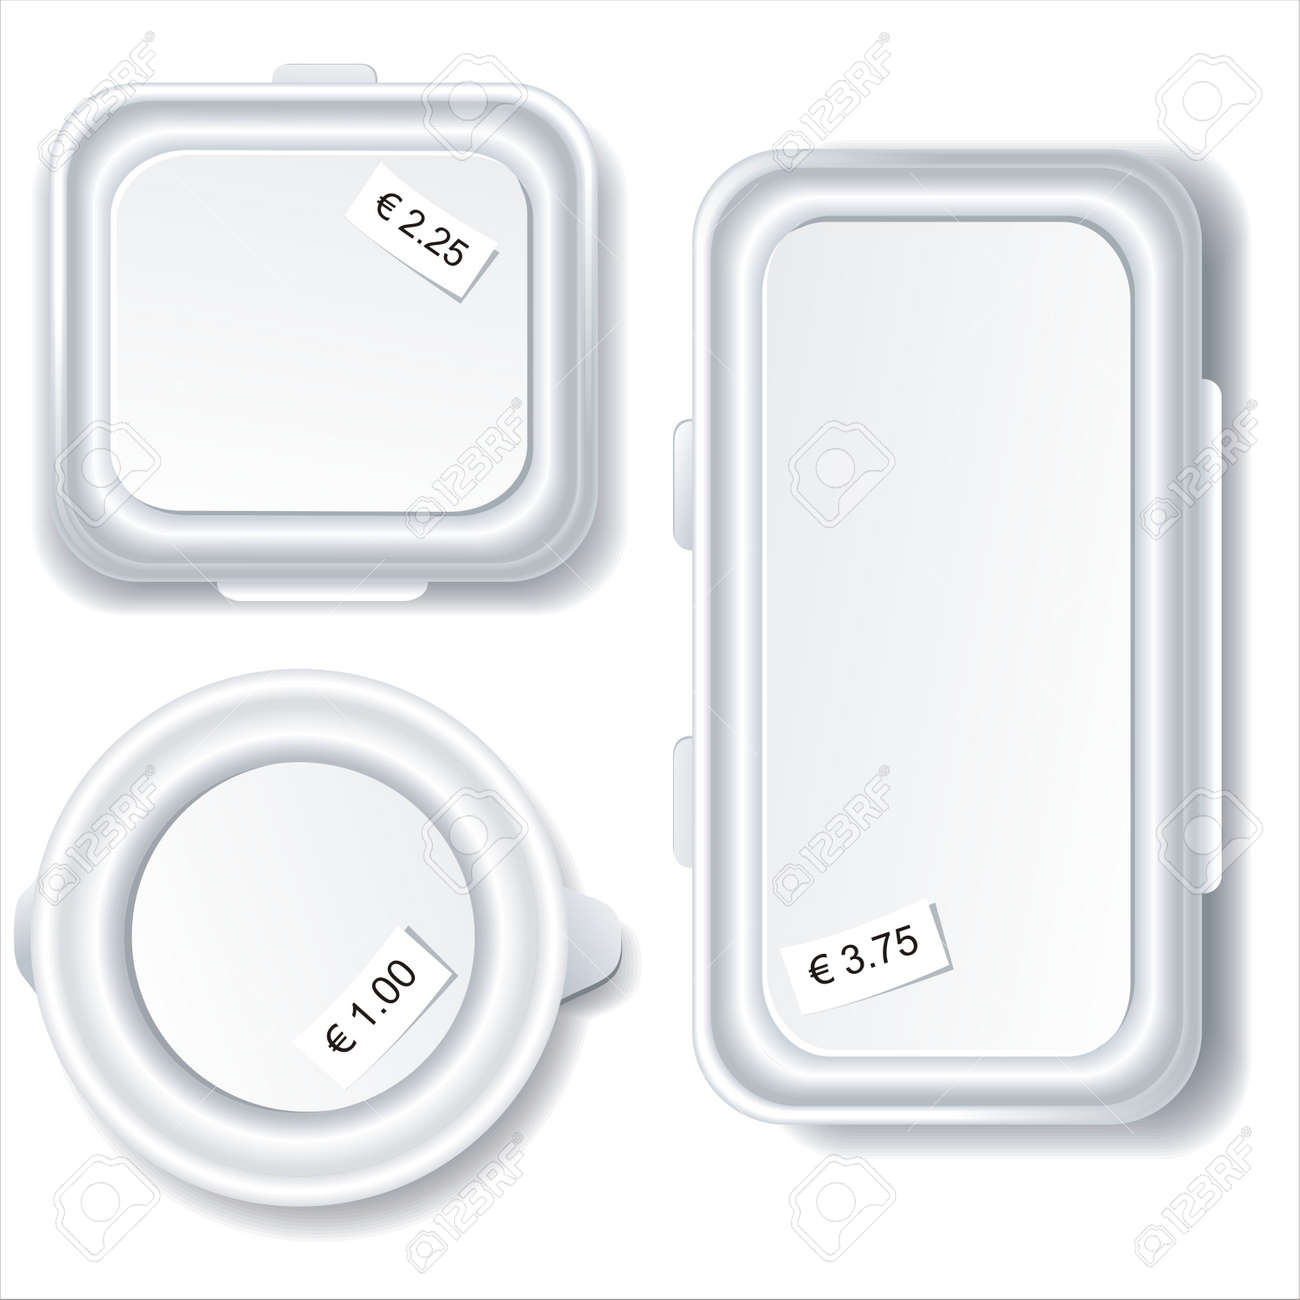 Plastic food storage containers isolated on white background. Stock Vector - 10283202